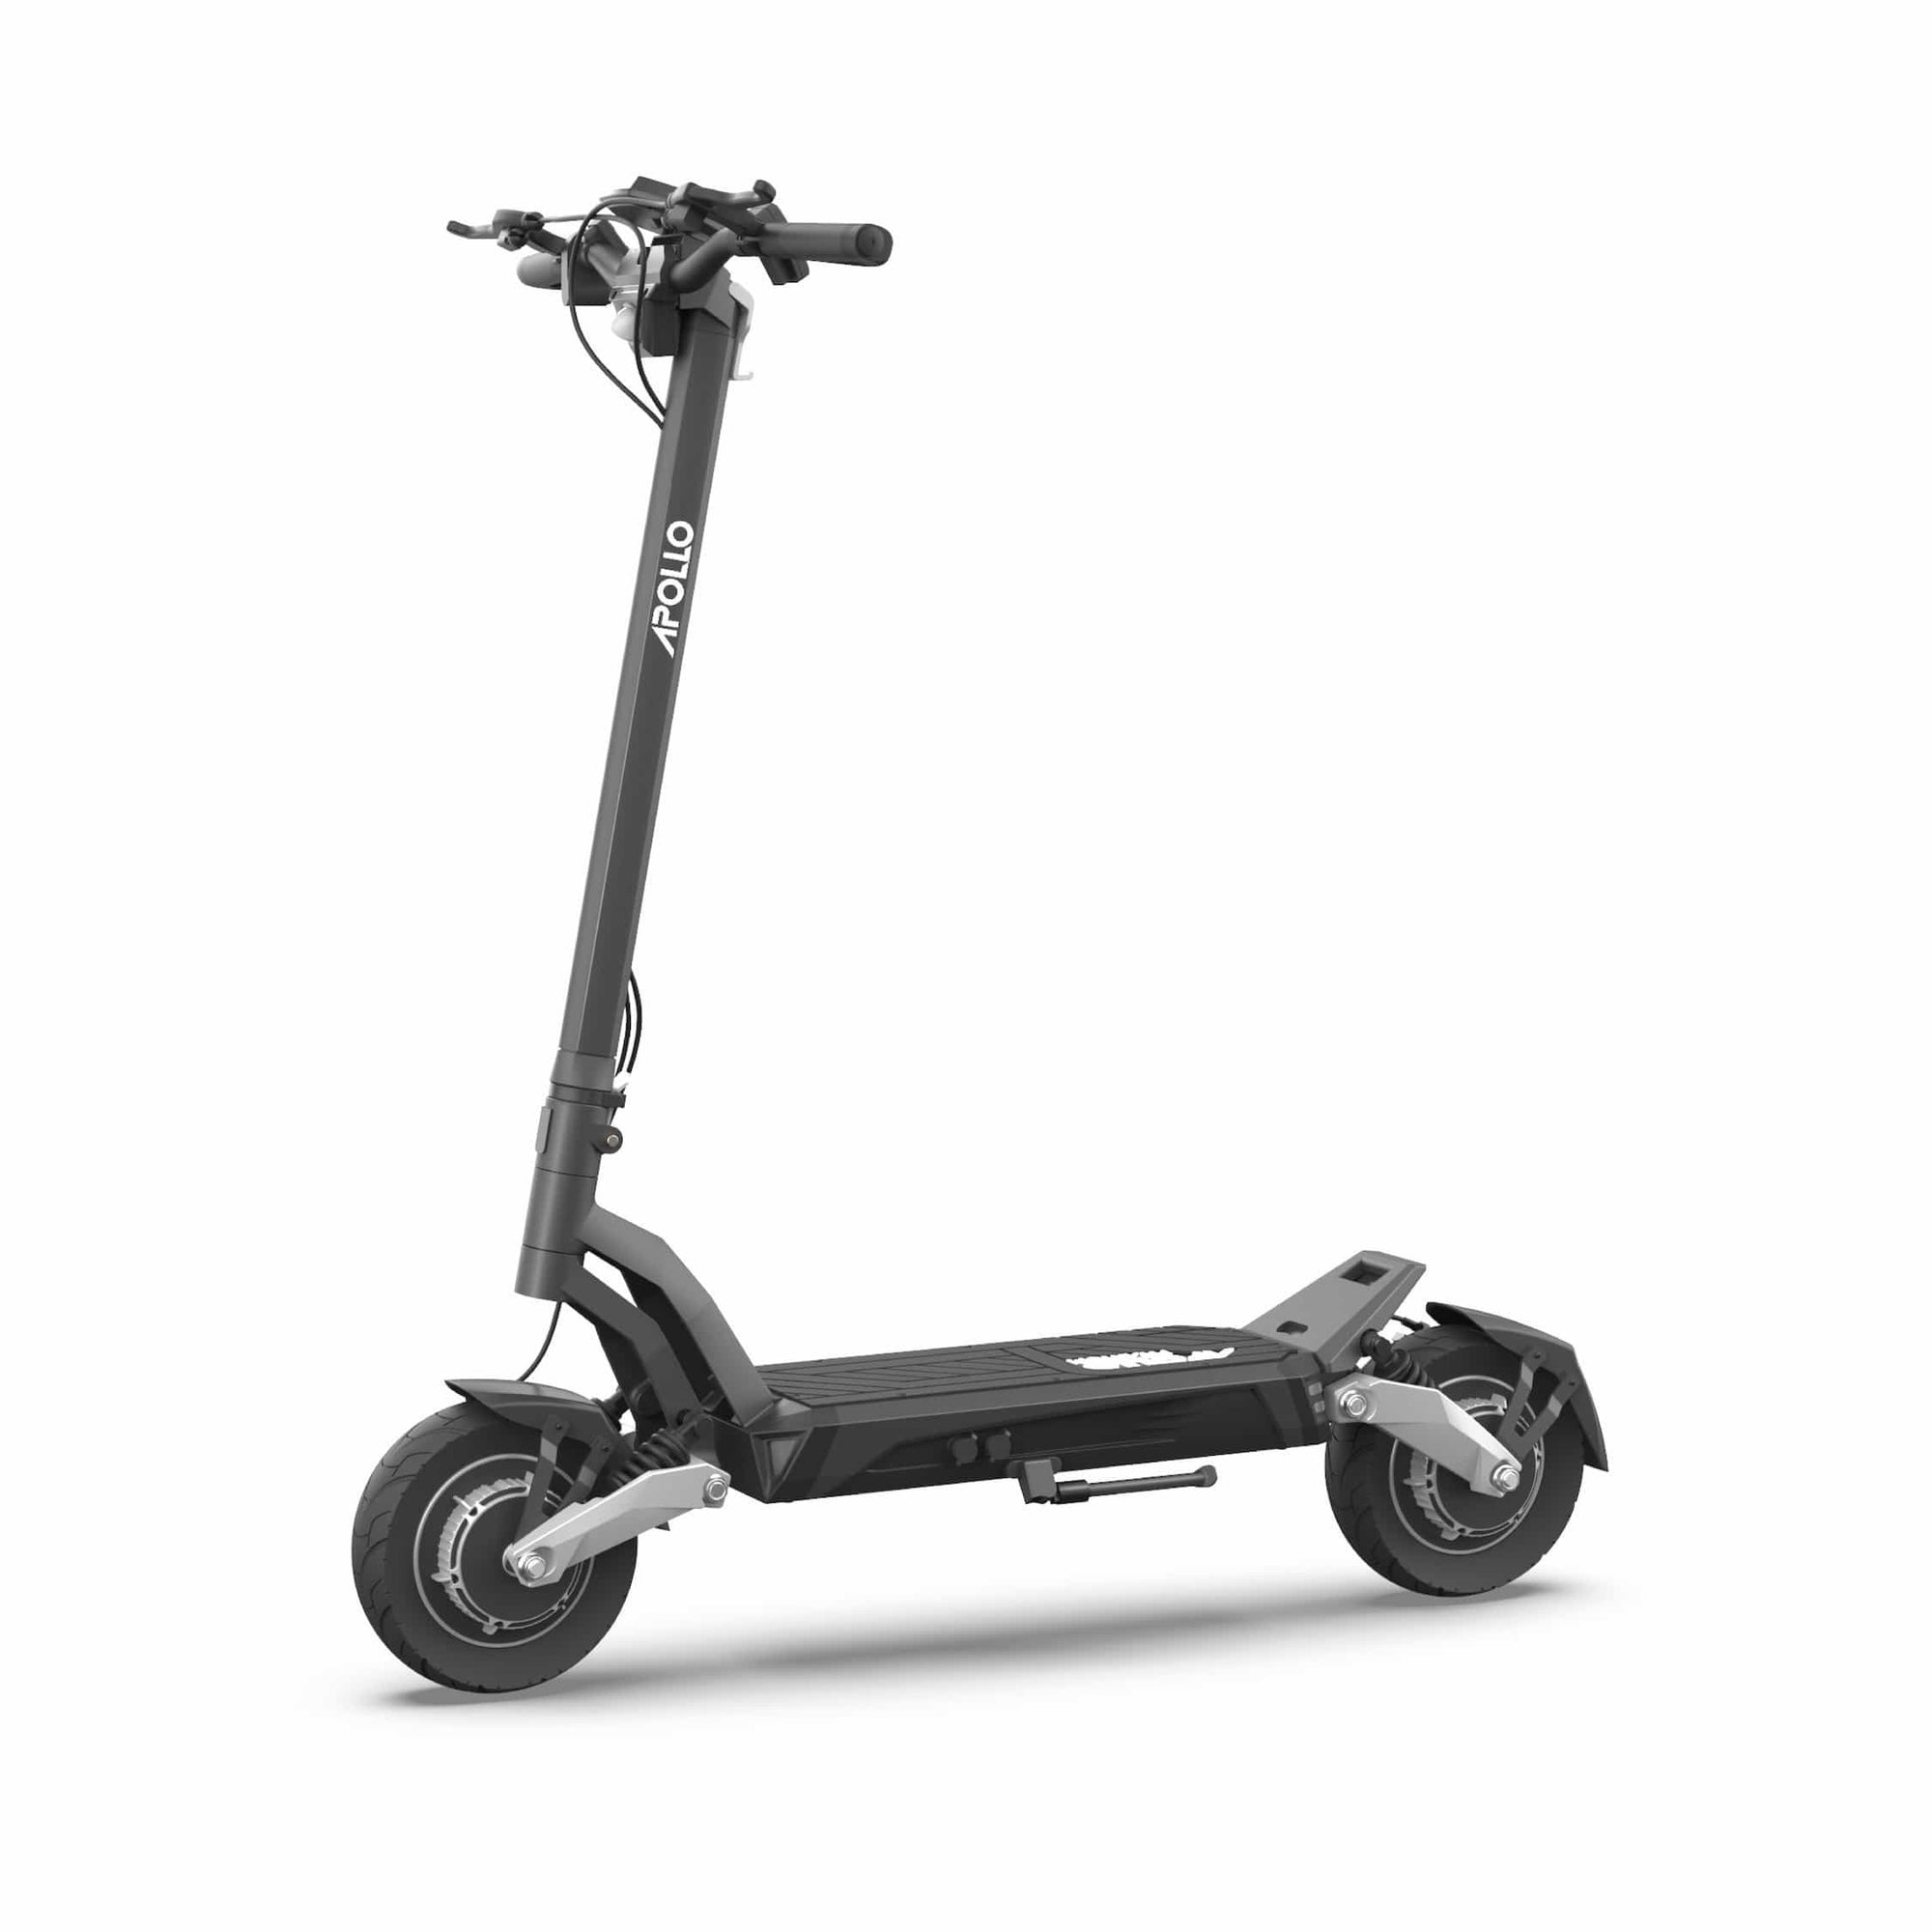 Apollo Phantom Electric Scooter - Beyond PEV